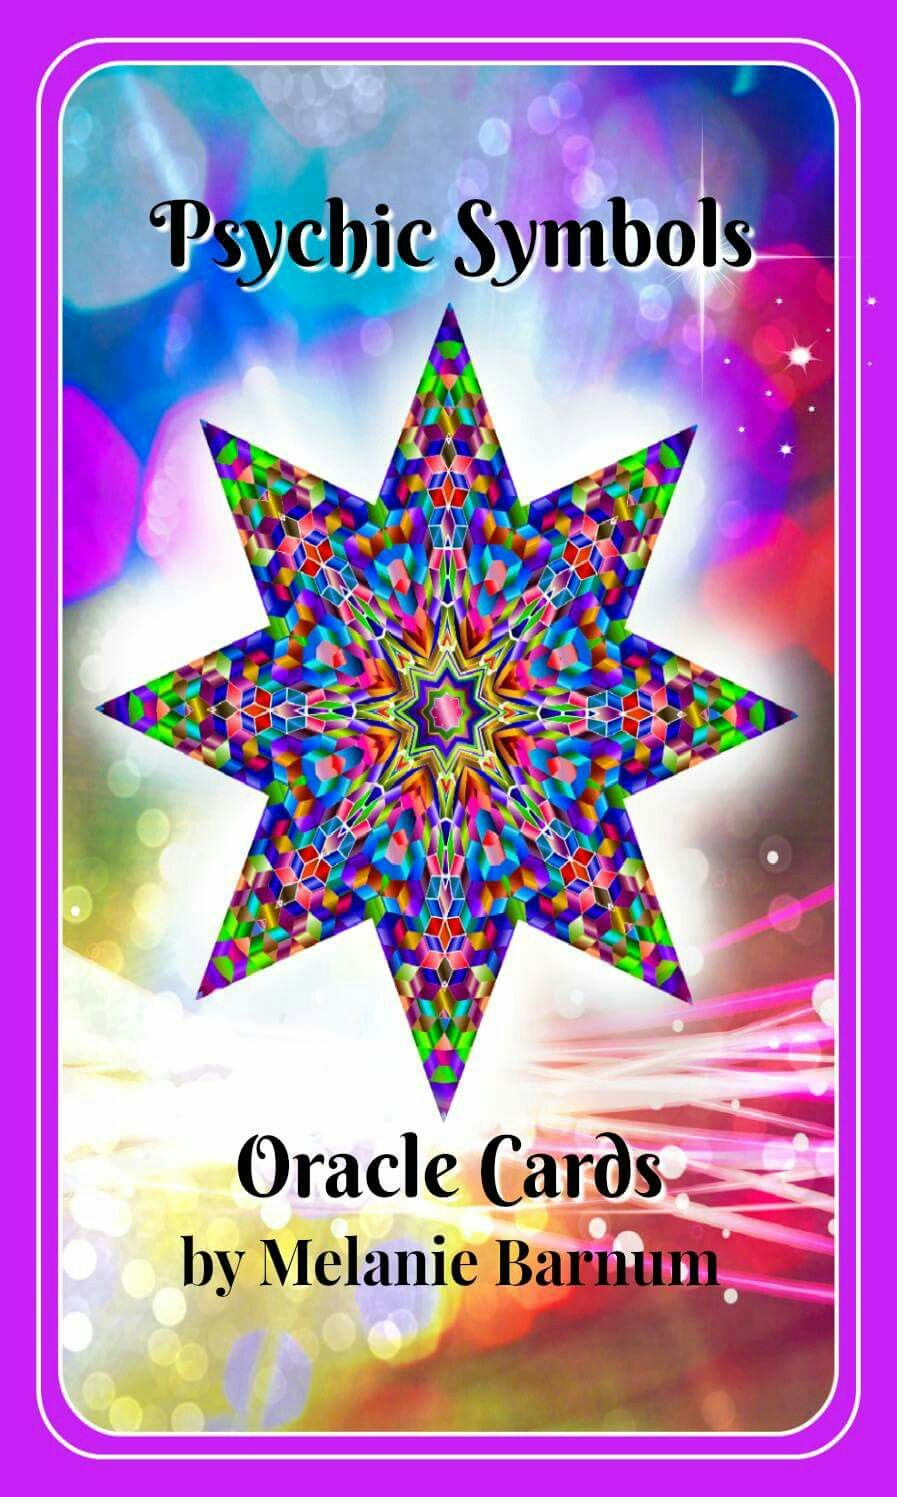 My new Psychic Symbols Oracle Cards! For sale on my website!